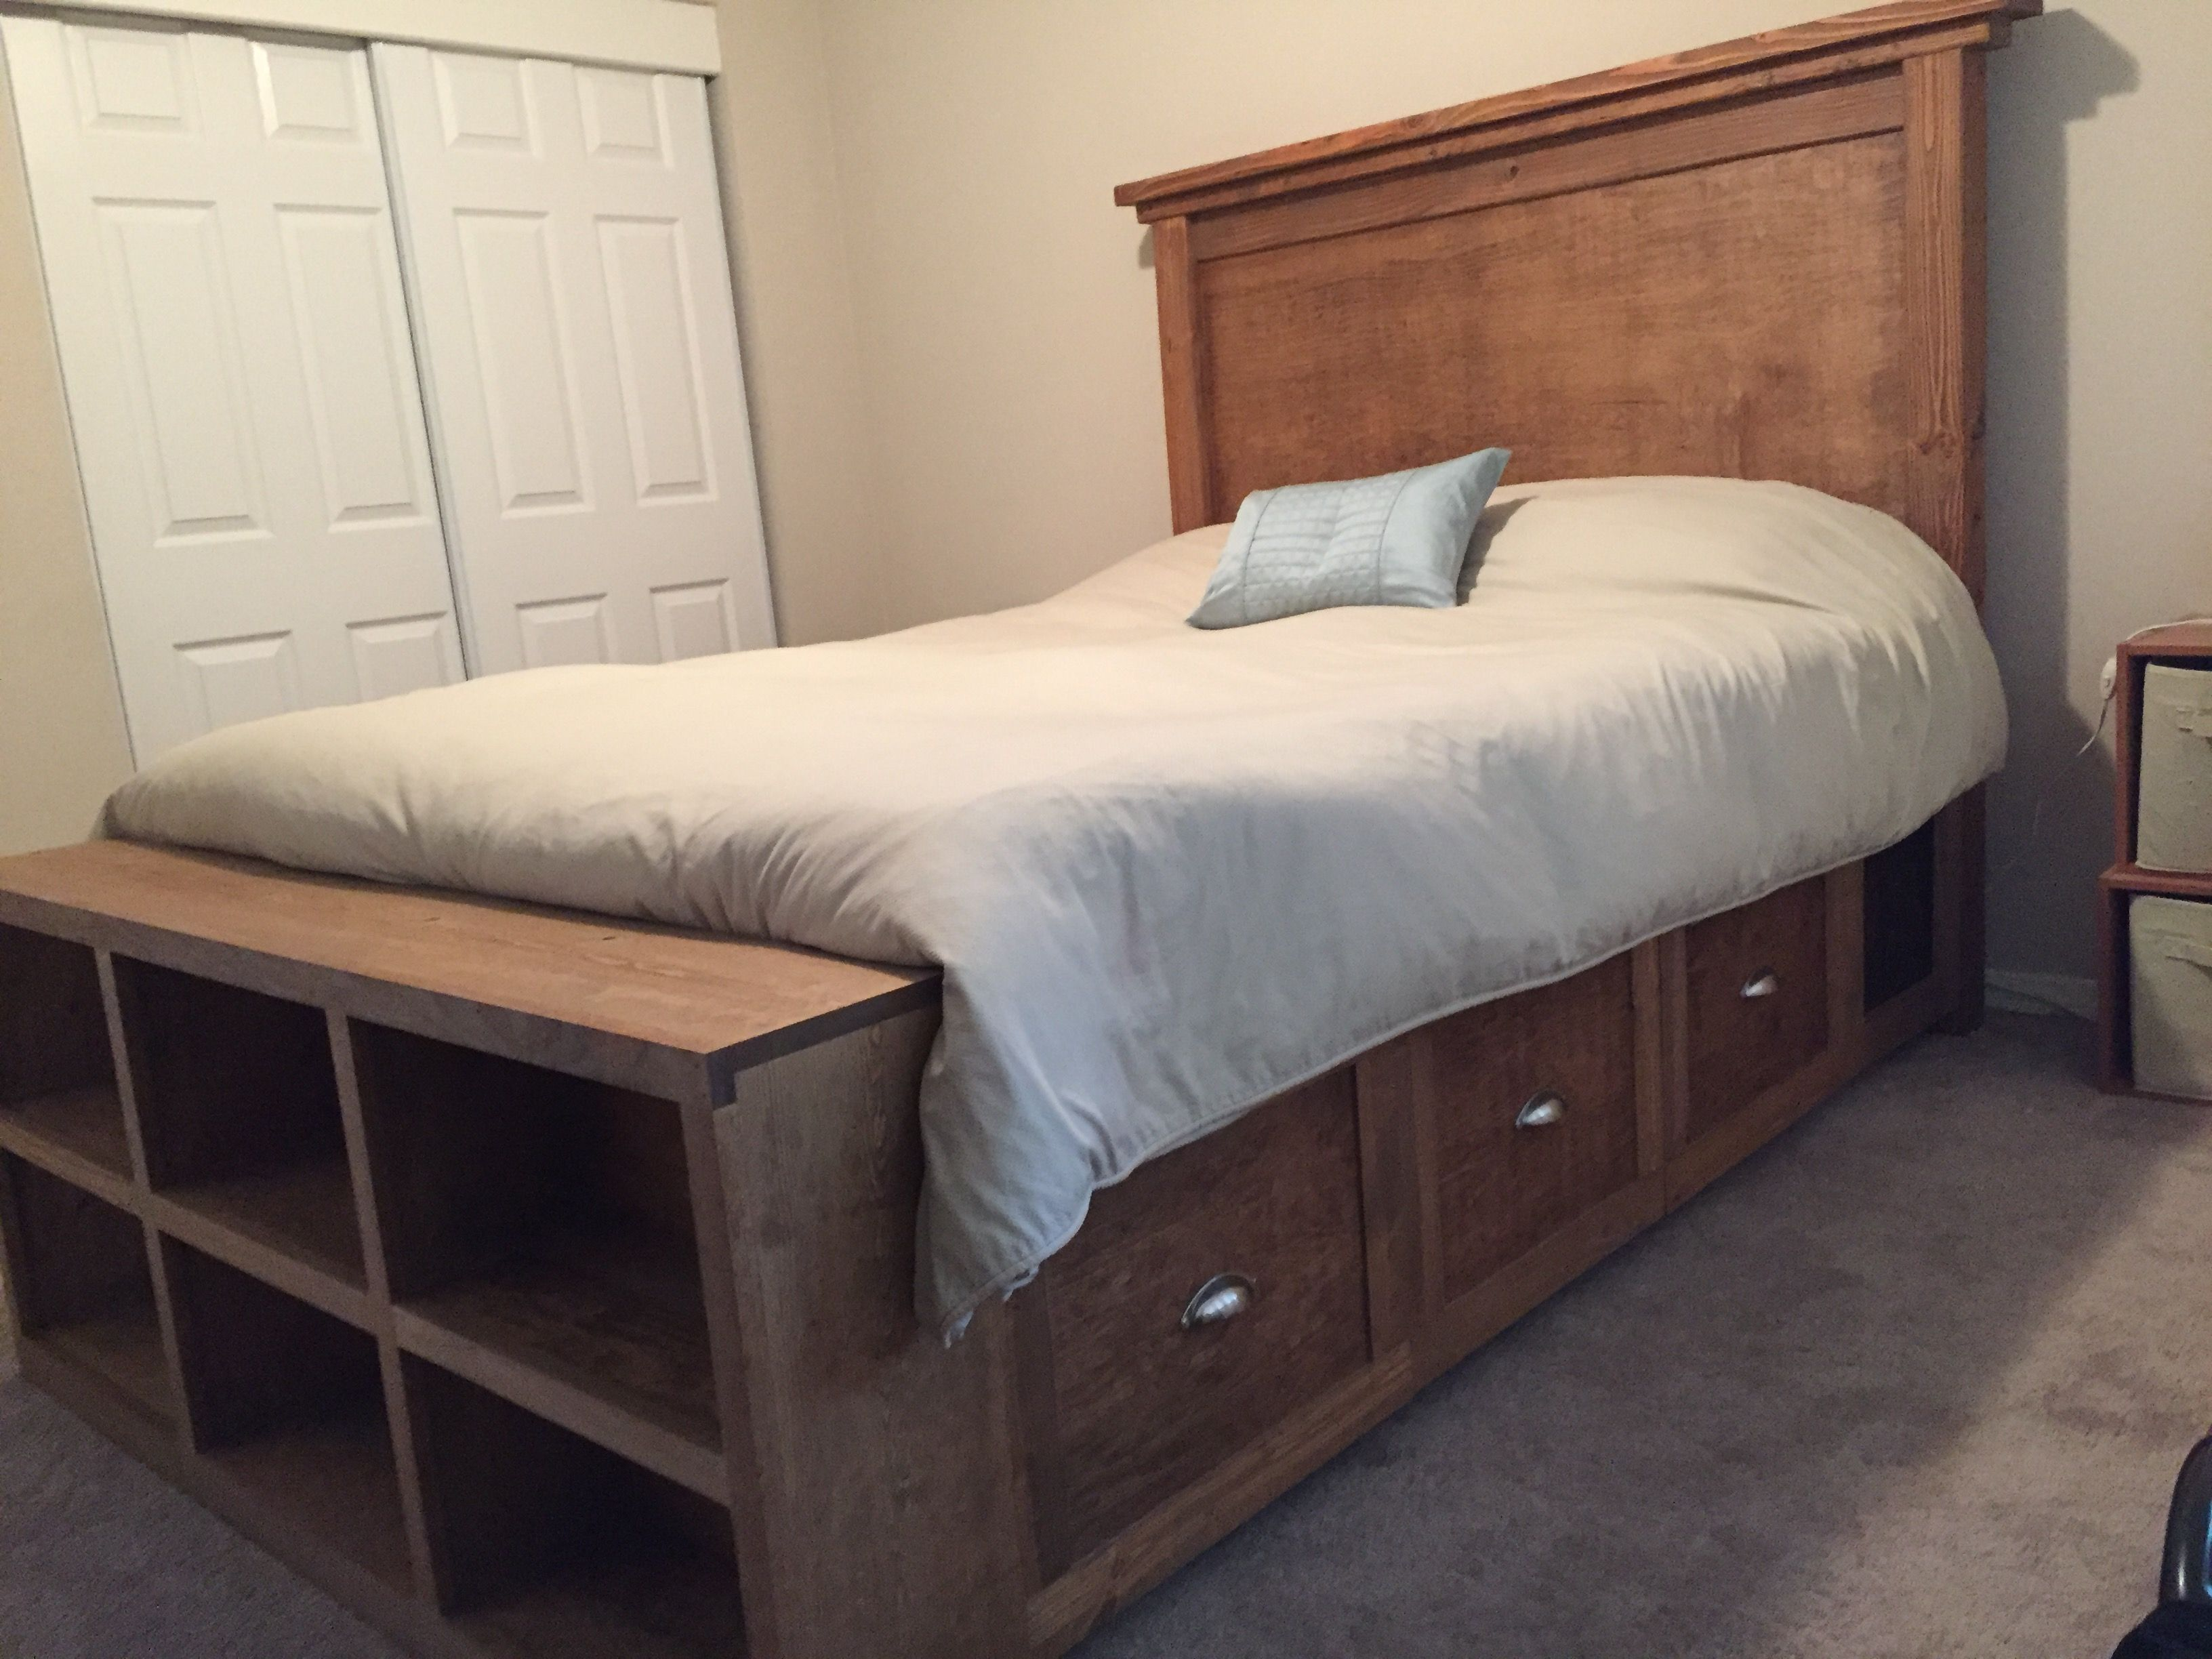 Farmhouse Bed with Storage and Bookshelf footboard | Do It Yourself ...